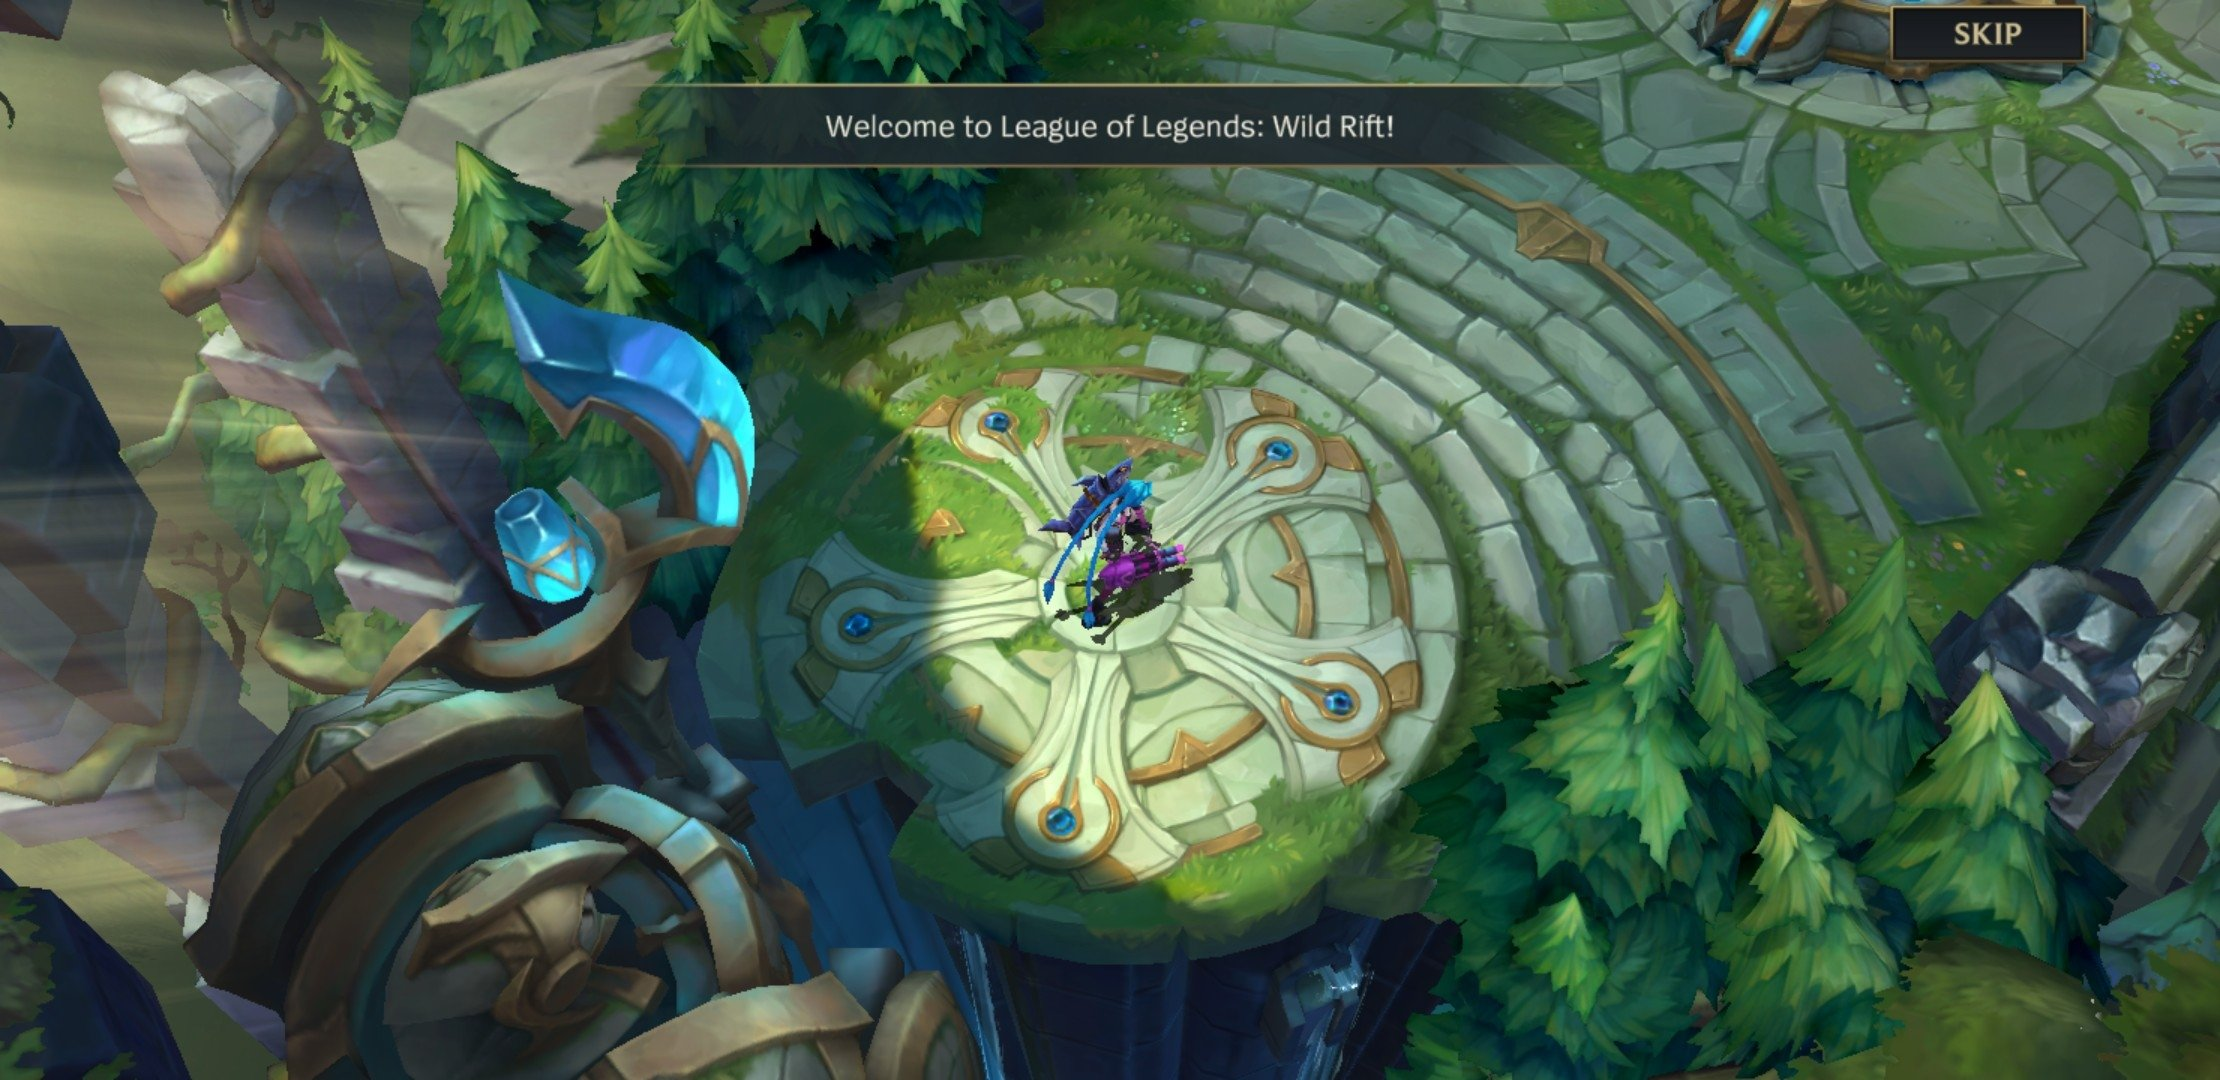 League Of Legends Wild Rift 1 0 0 3386 Download For Android Apk Free